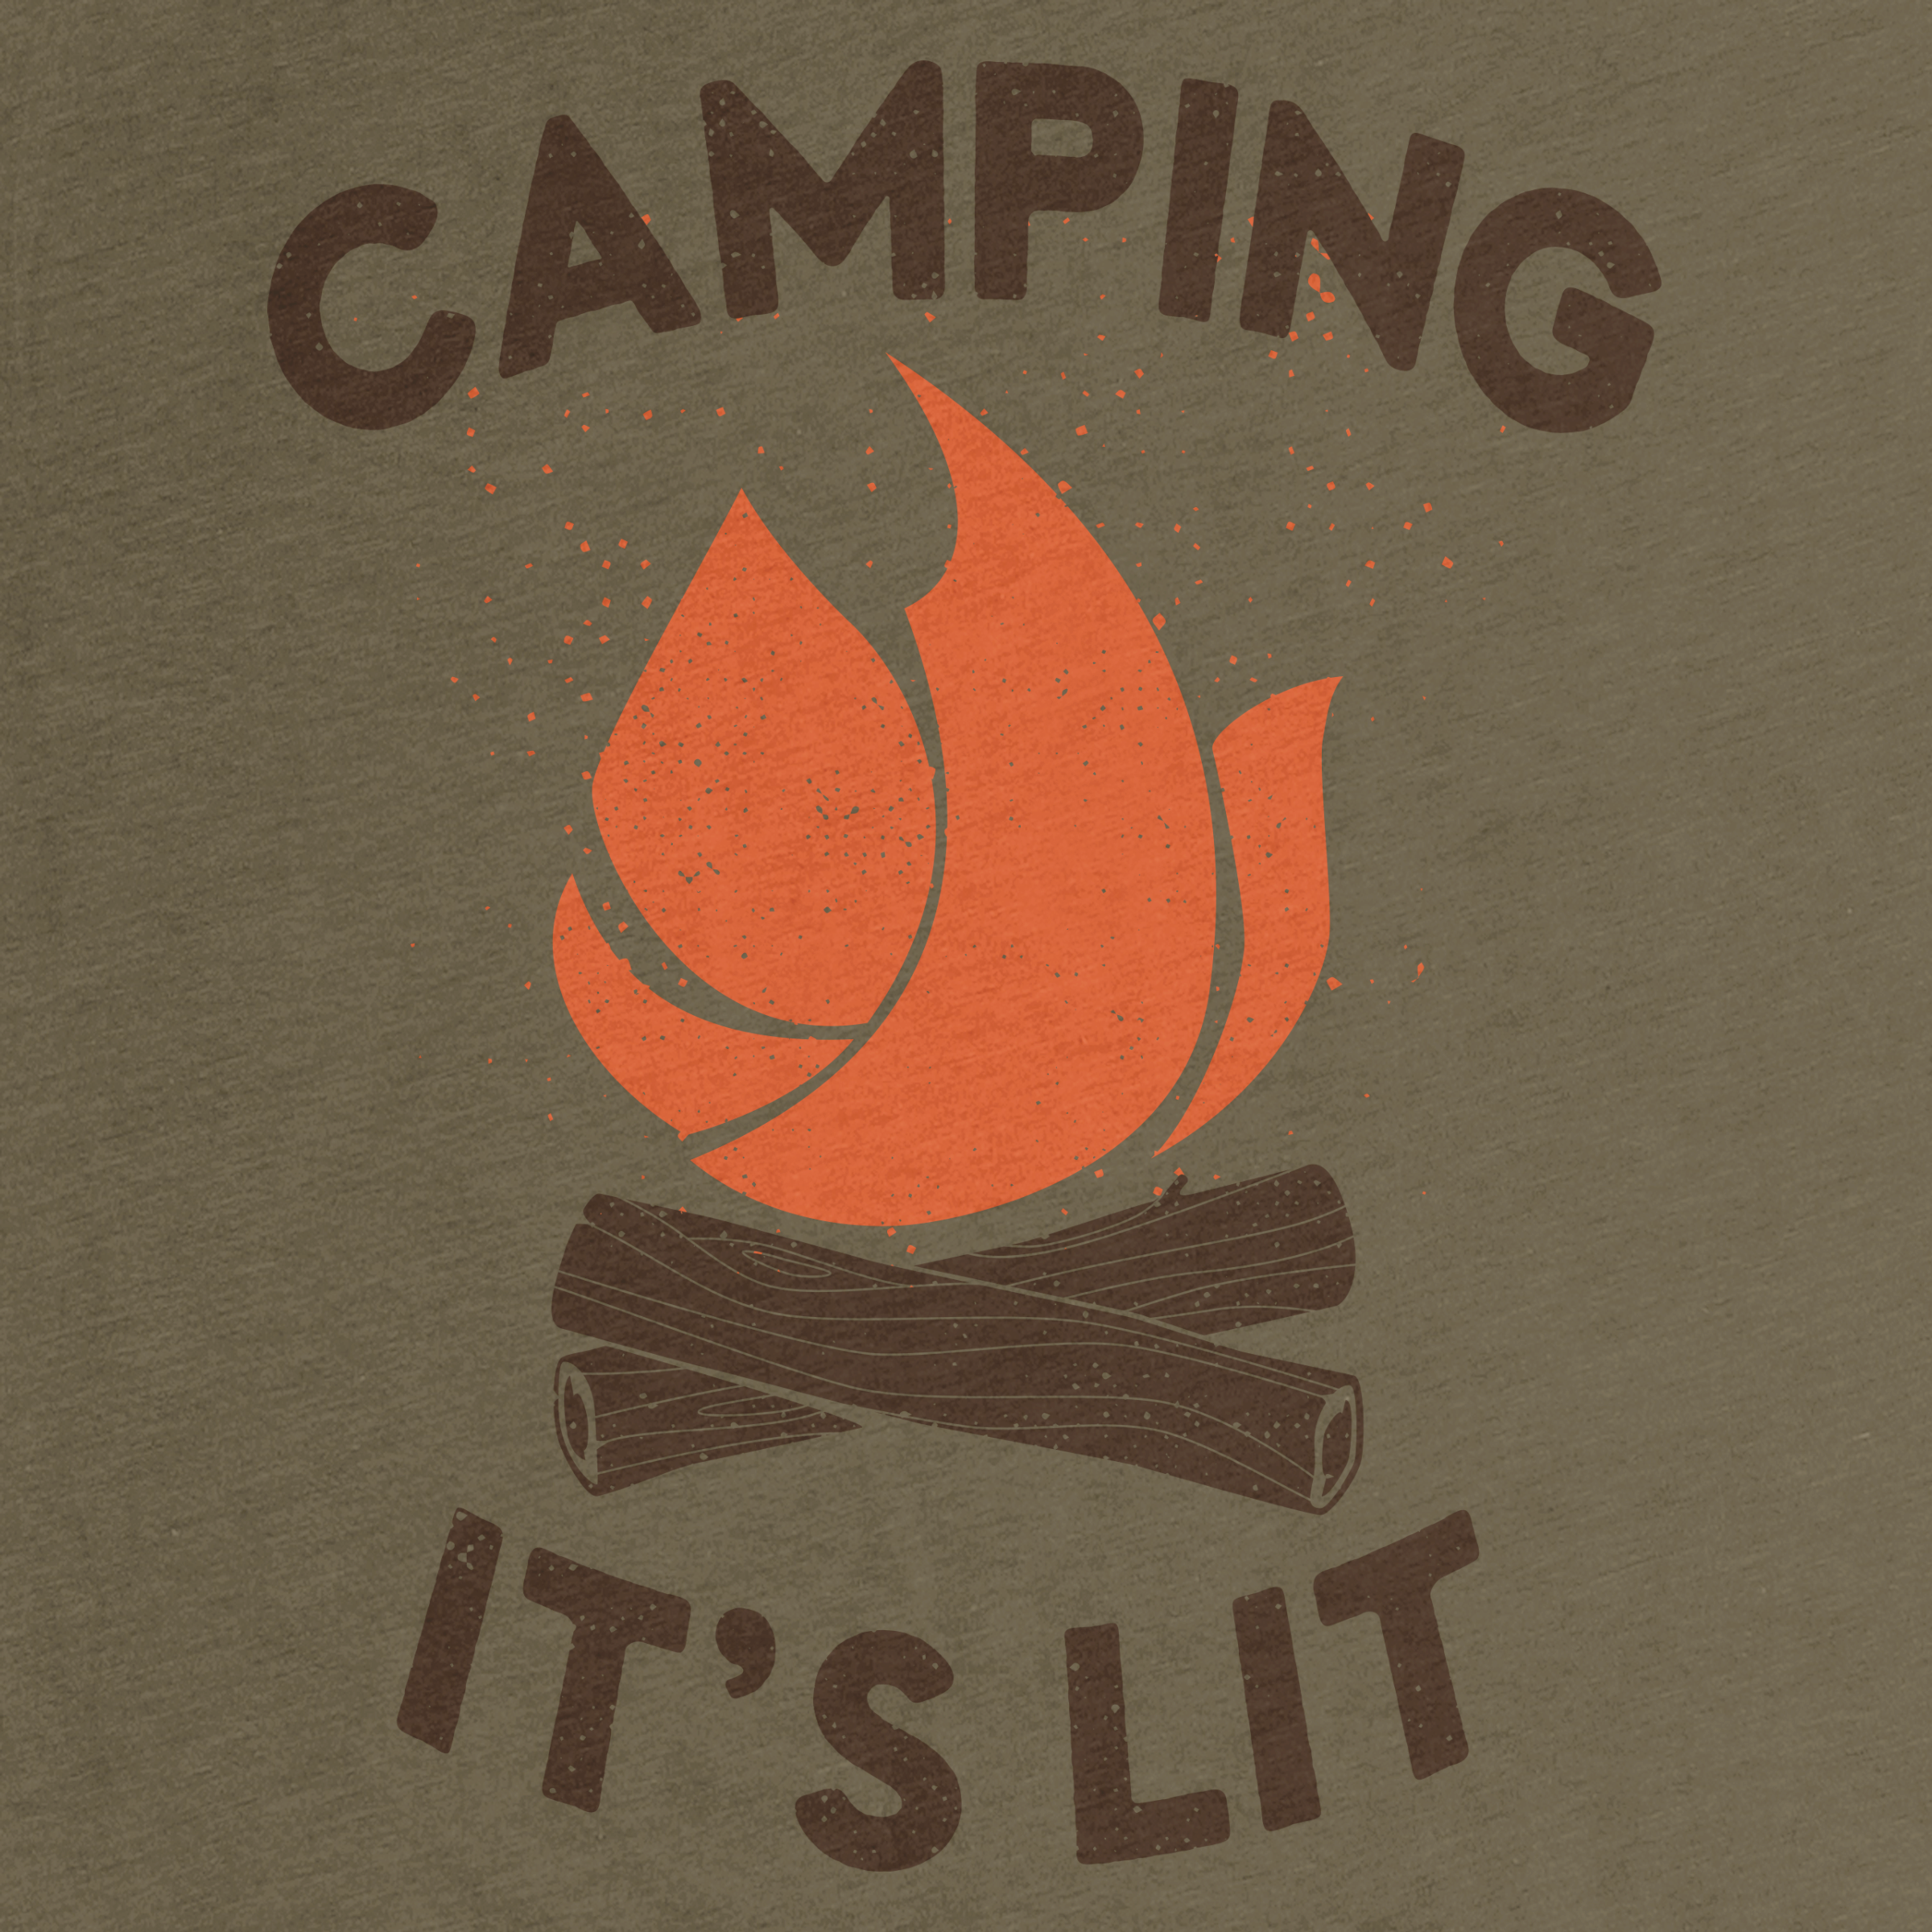 Camping: It's Lit.